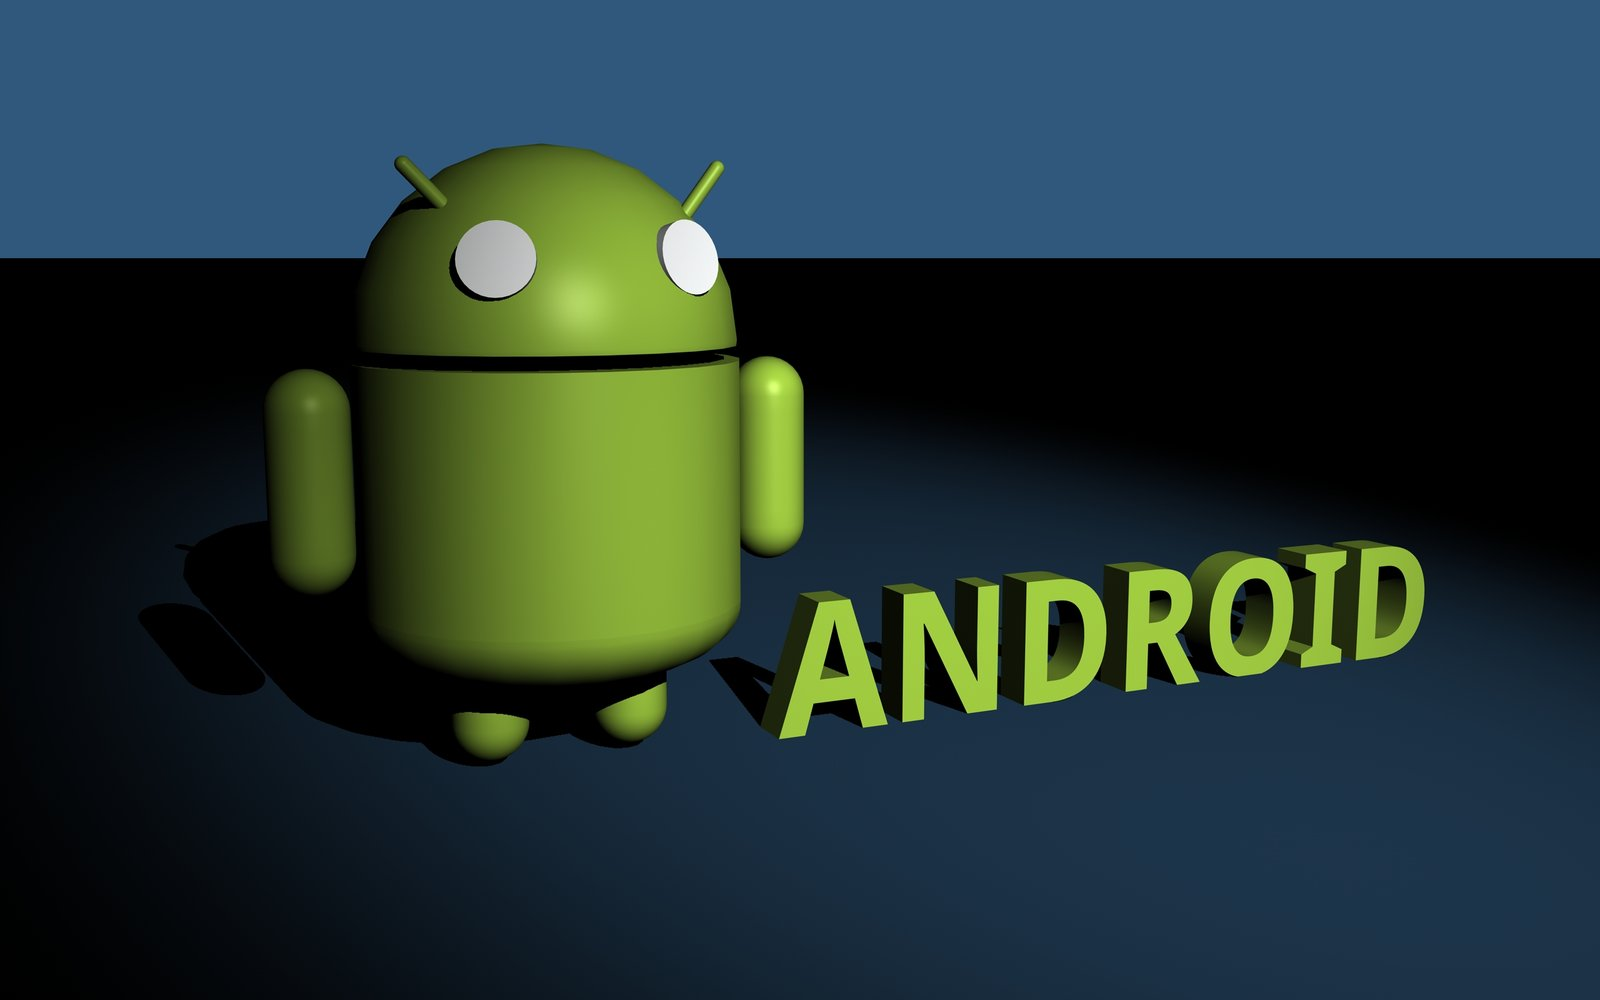 android background hd wallpaper details 1600x1000